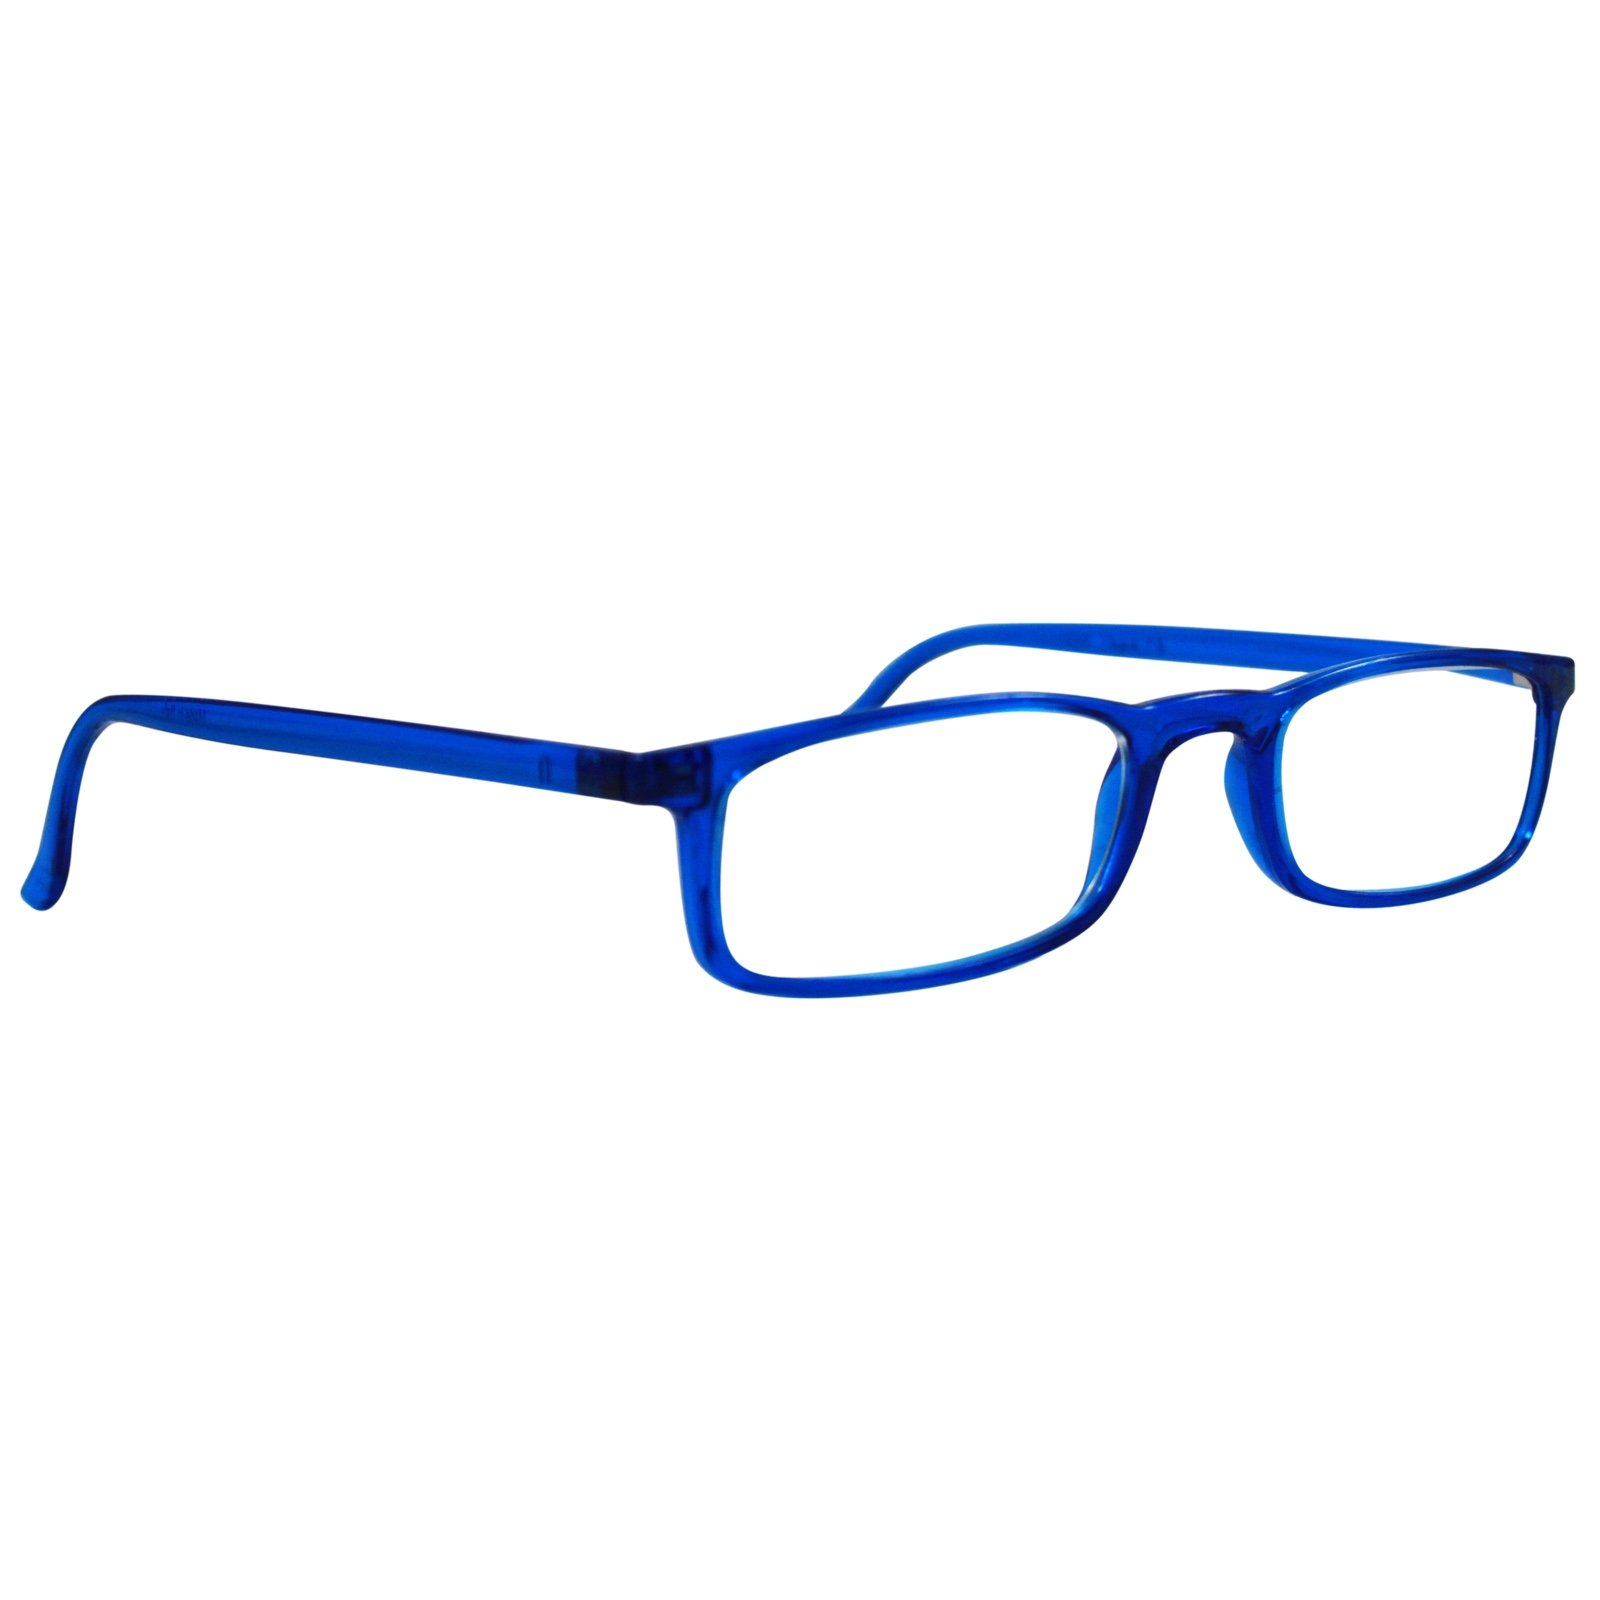 Nannini Quick 7.9 Lightweight Reader Glasses Blue 1.0, Front View